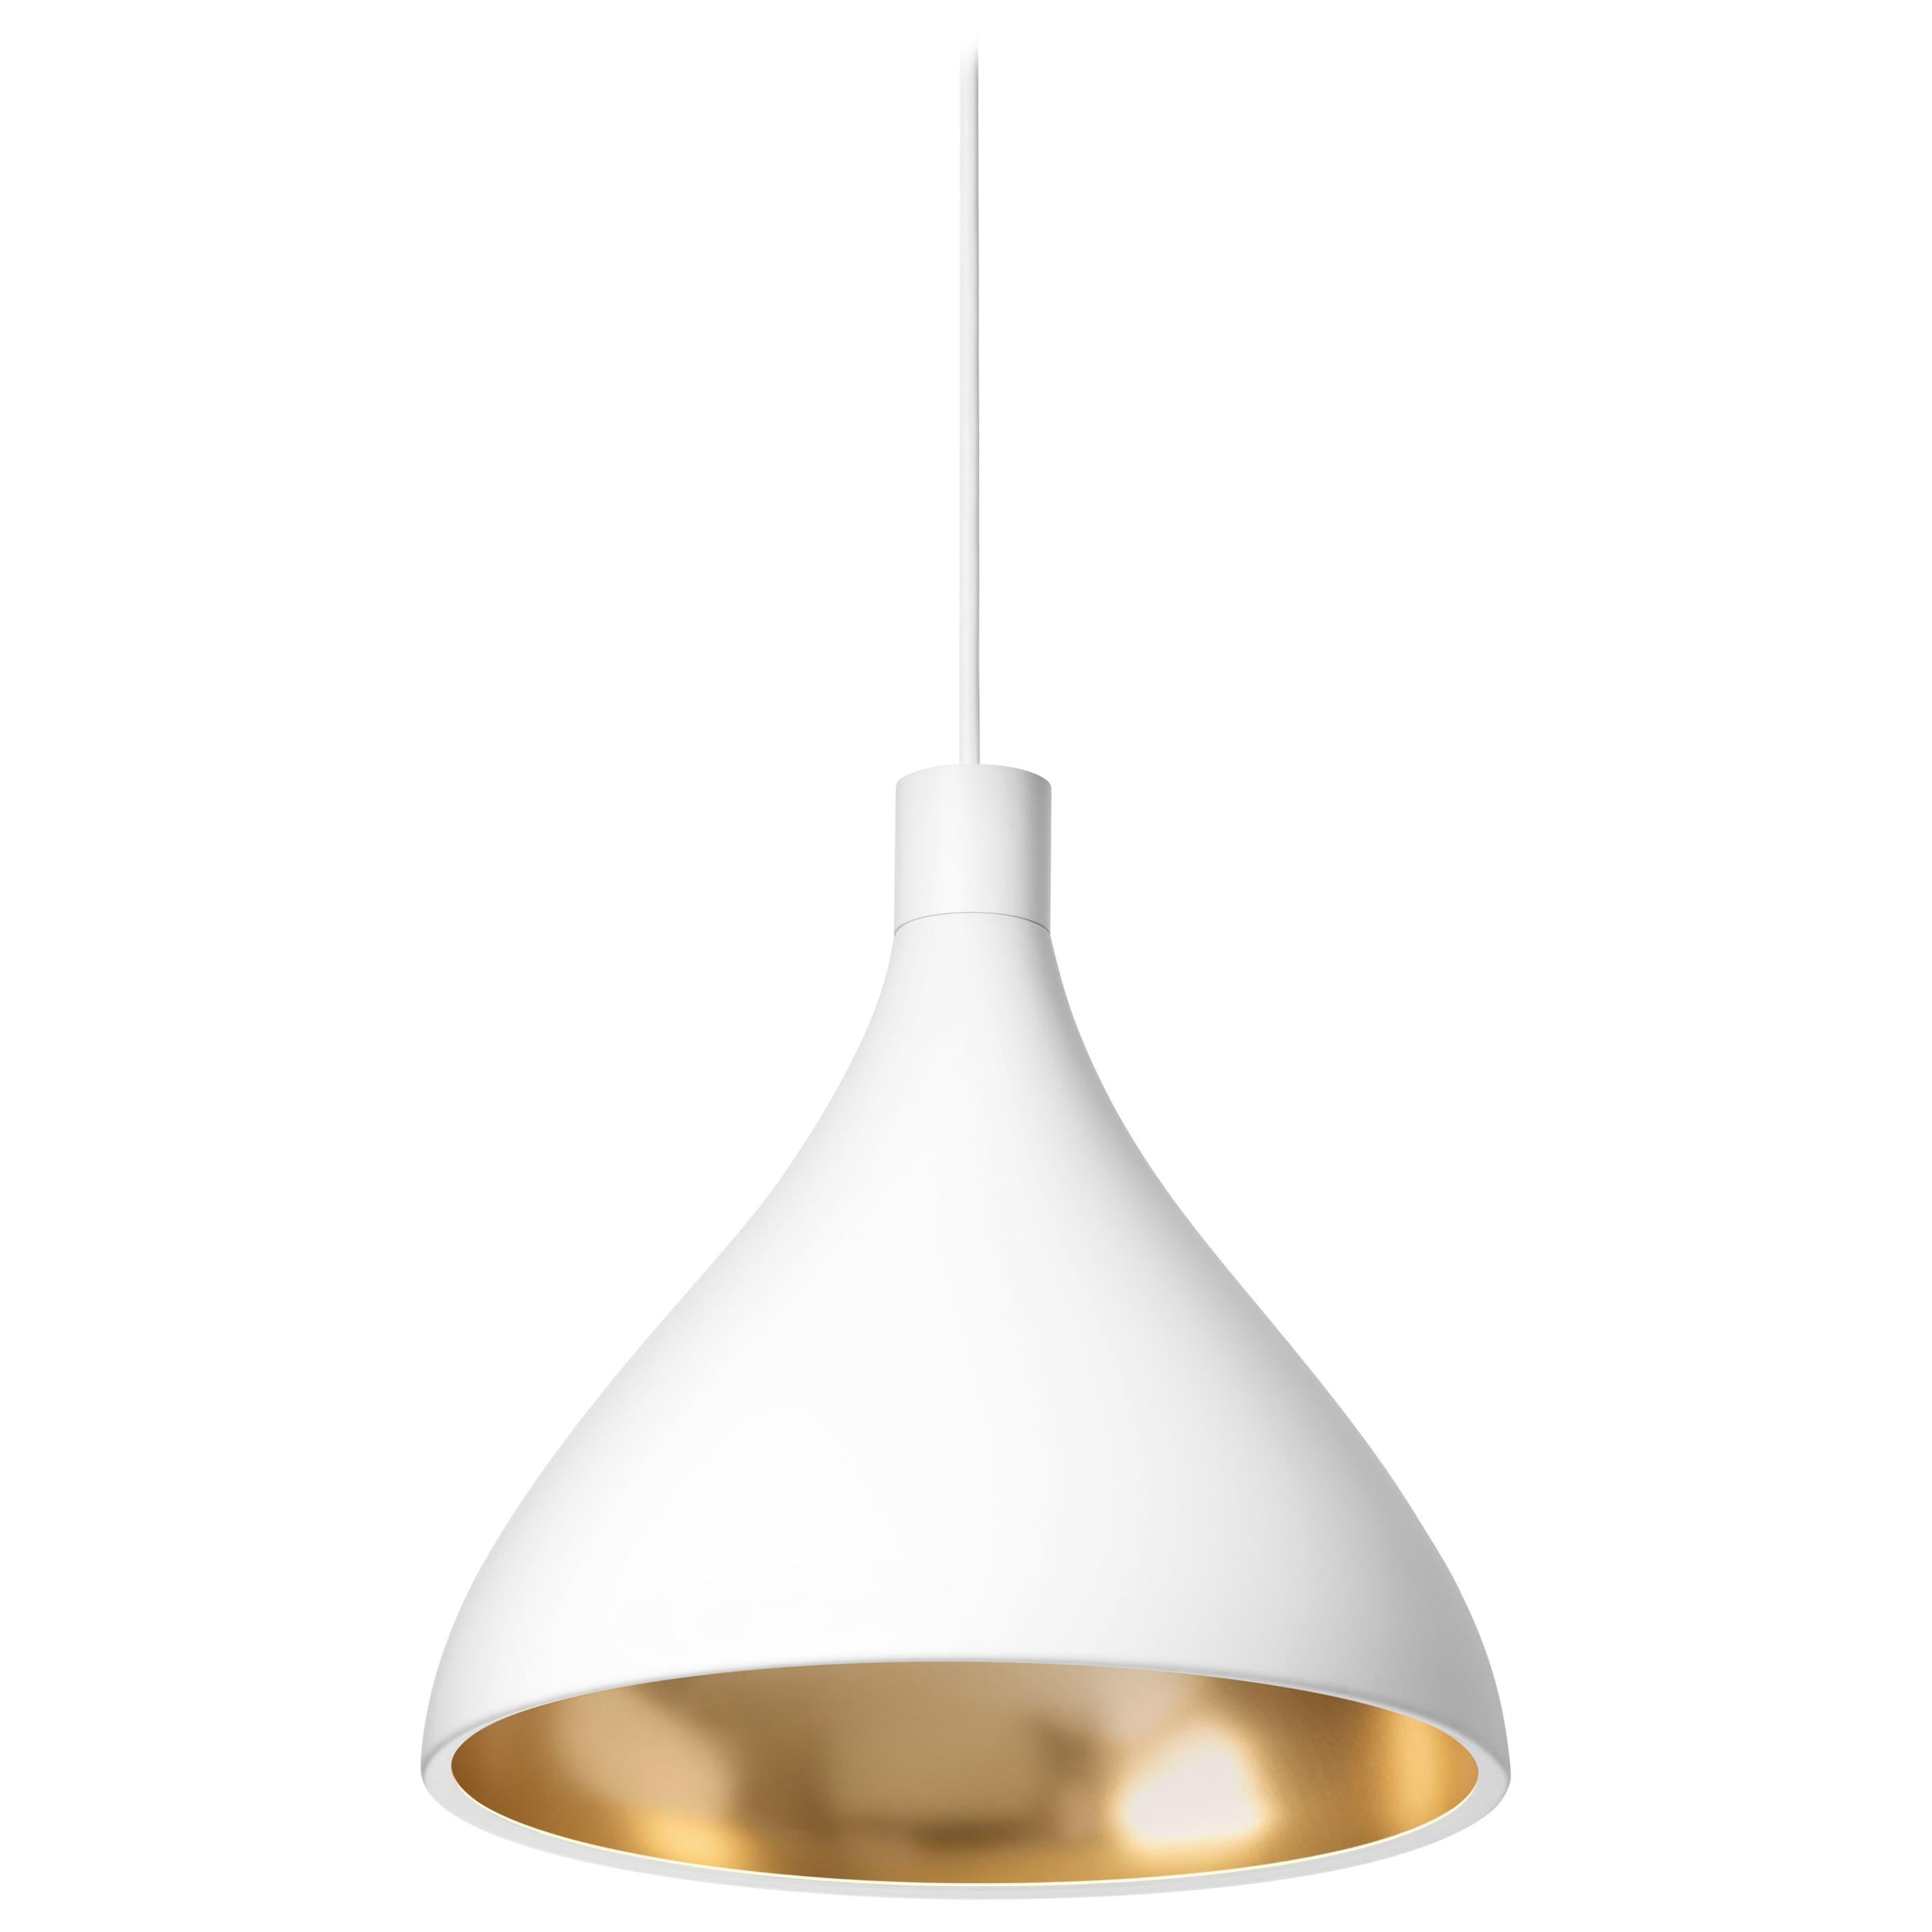 Medium Swell Pendant Light in White and Brass by Pablo Designs